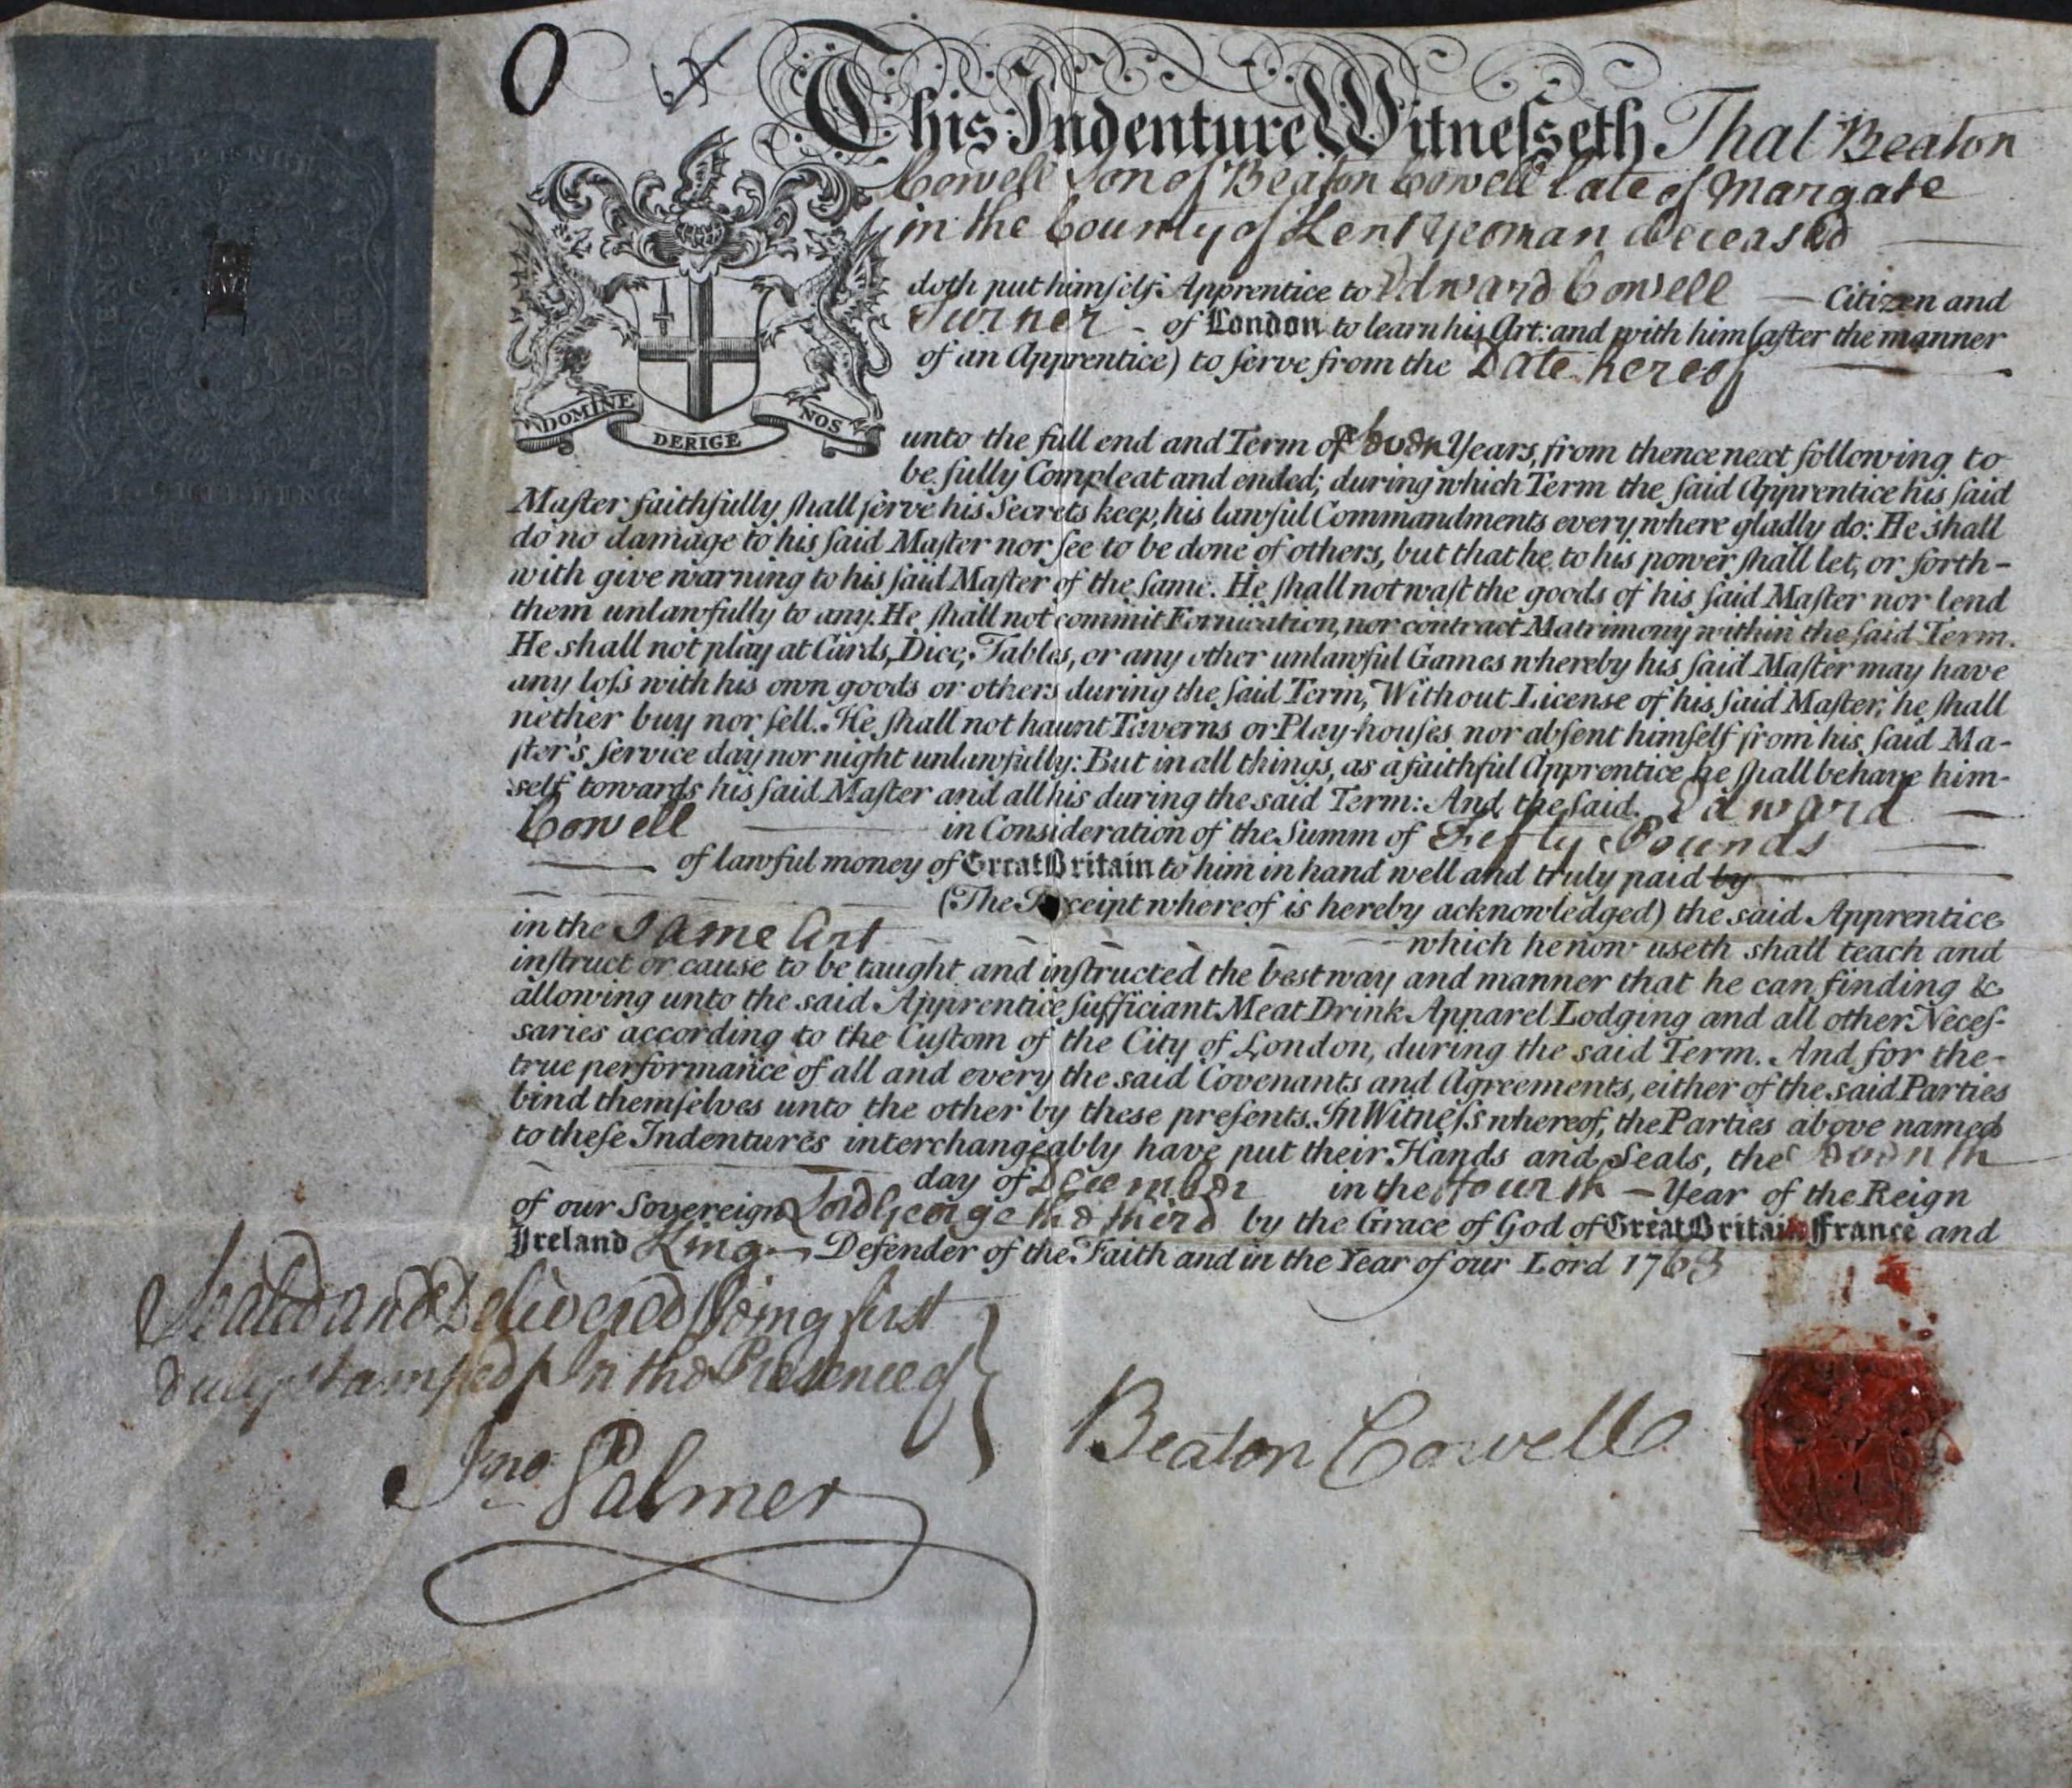 Freedom of the City of London - 7 Dec 1763